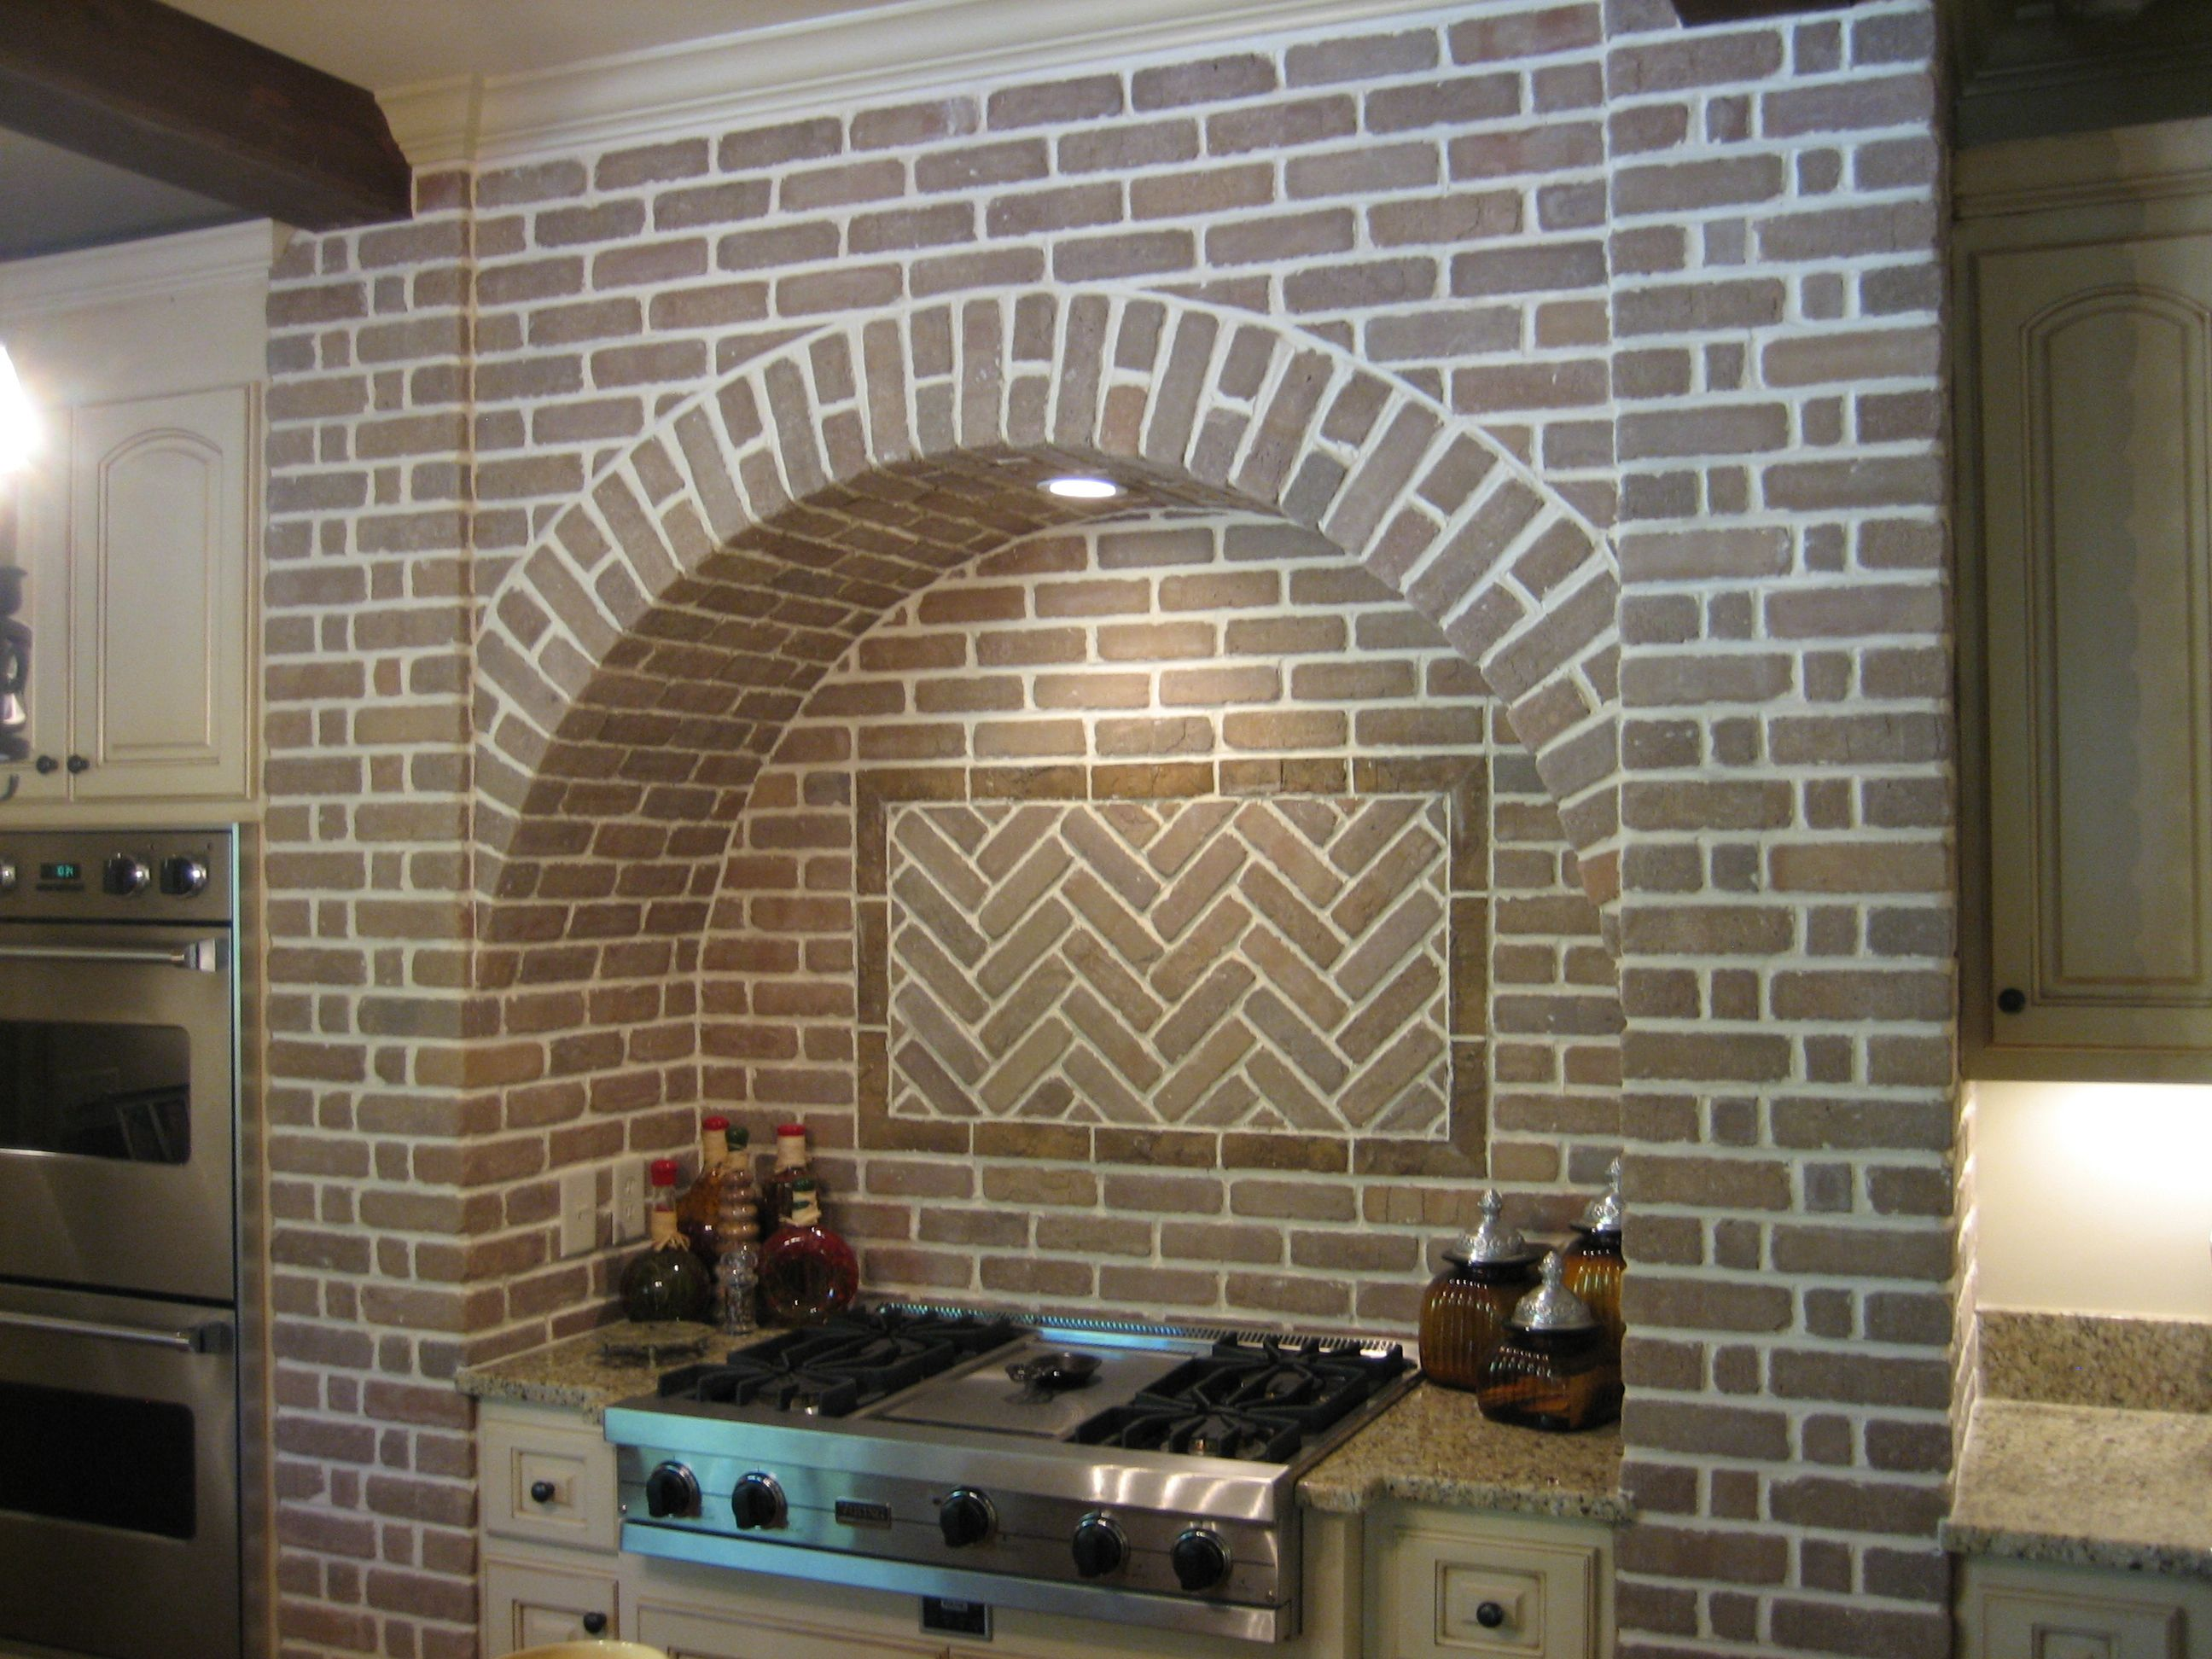 herringbone accent | Cladding, Brick backsplash